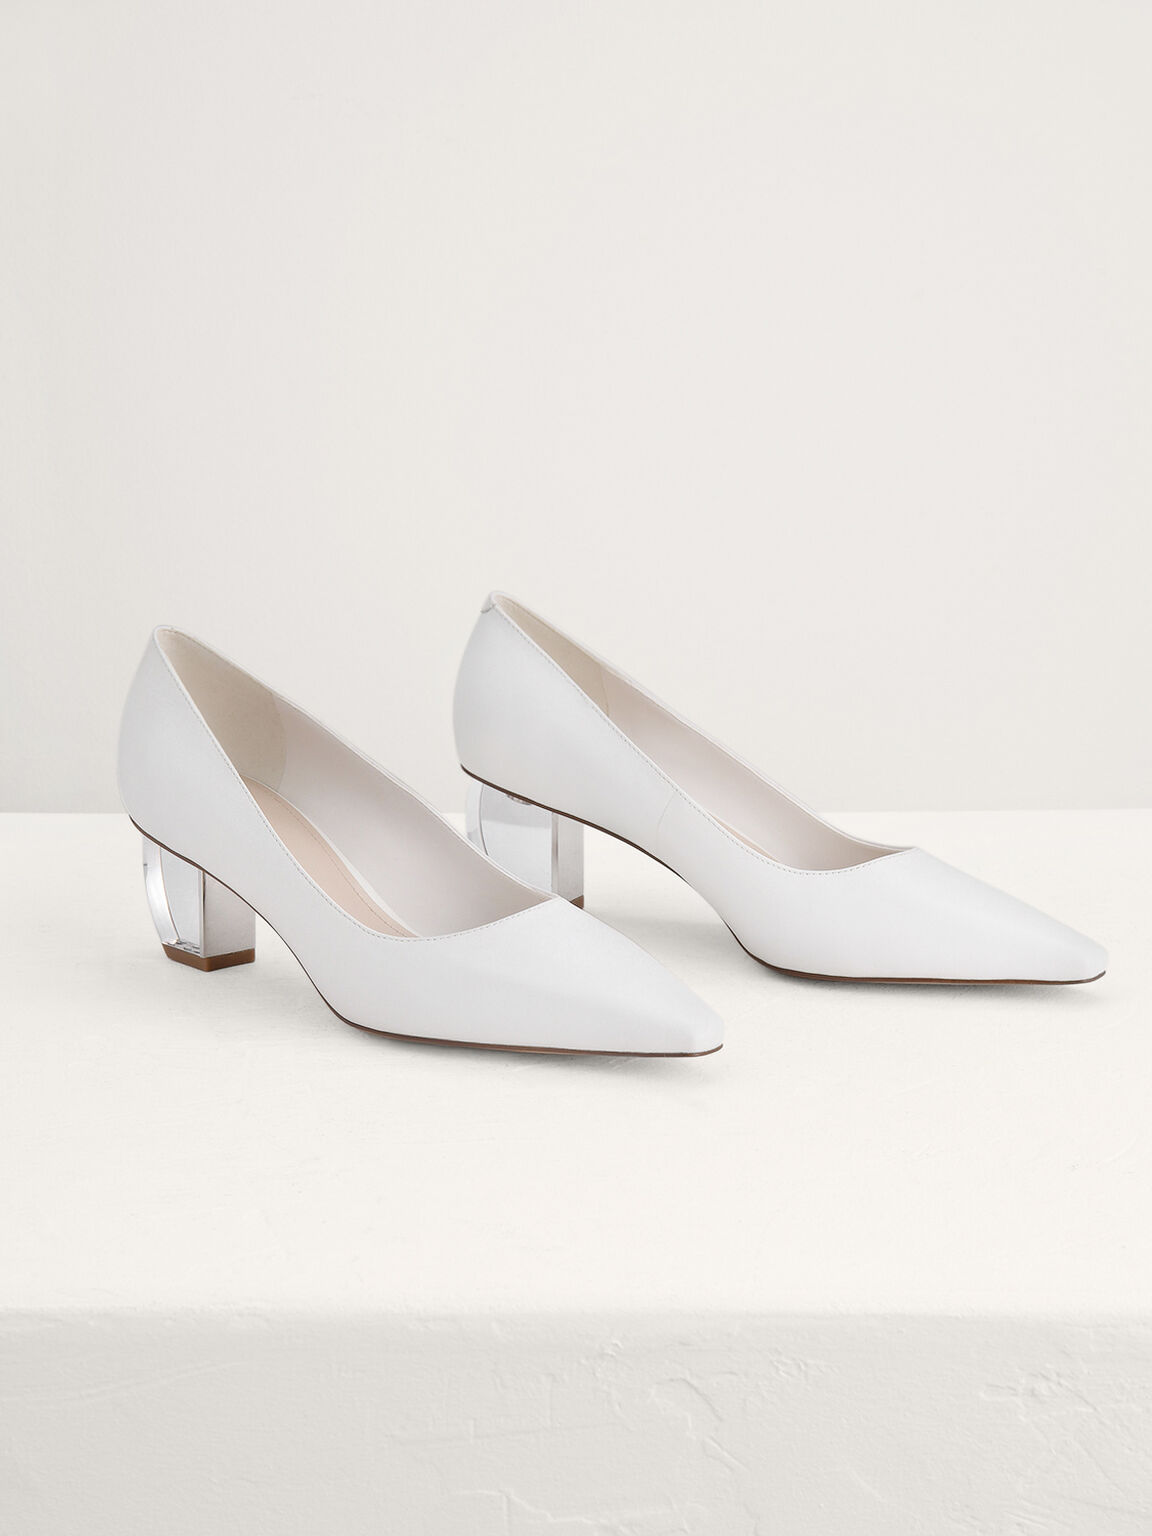 Leather Pumps with Lucite Heels, White, hi-res